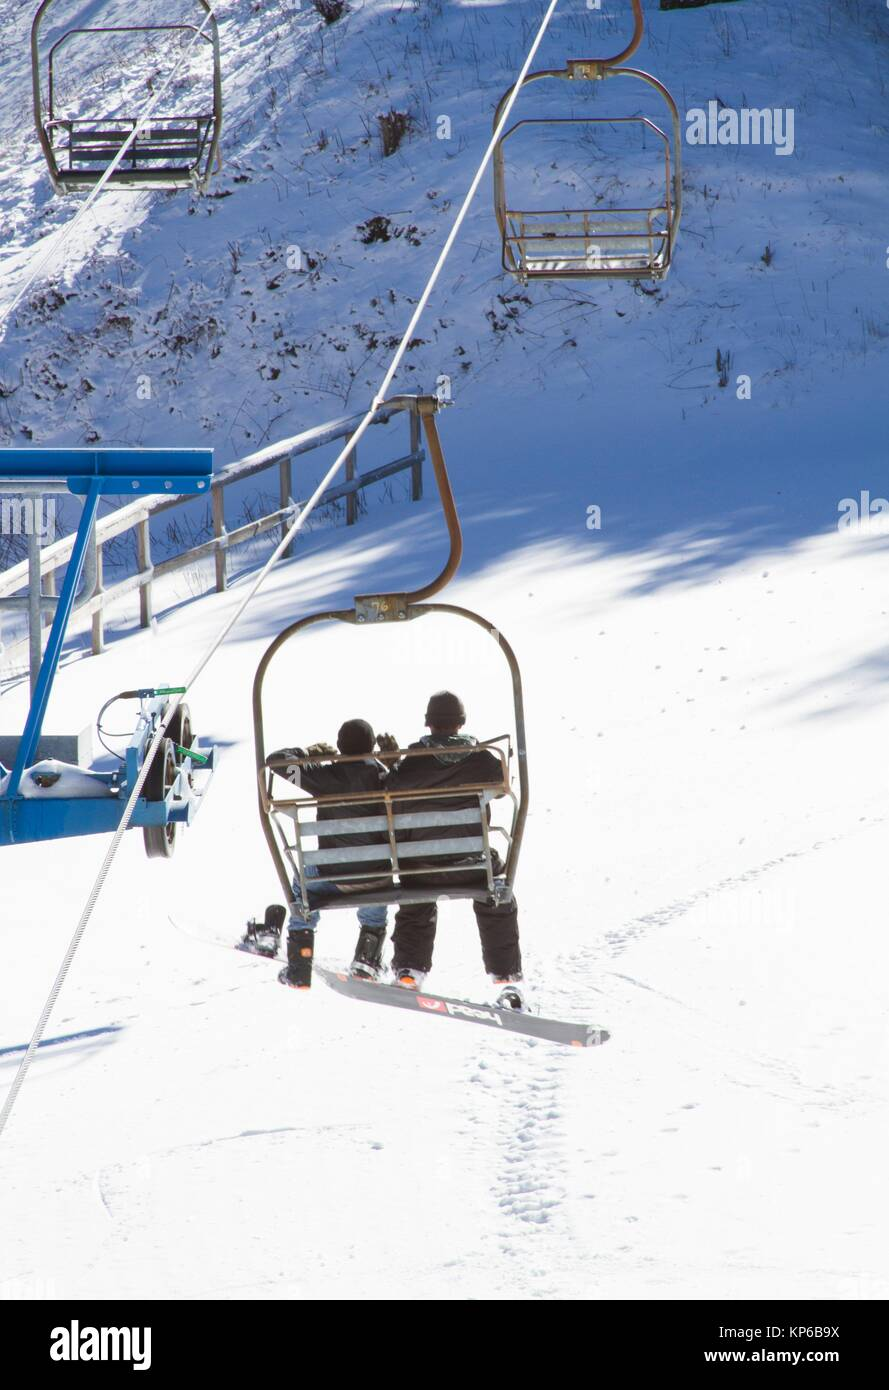 A chairlift and skiers on piste in Gatlinburg, in the region of Teneesee, in the USA. - Stock Image